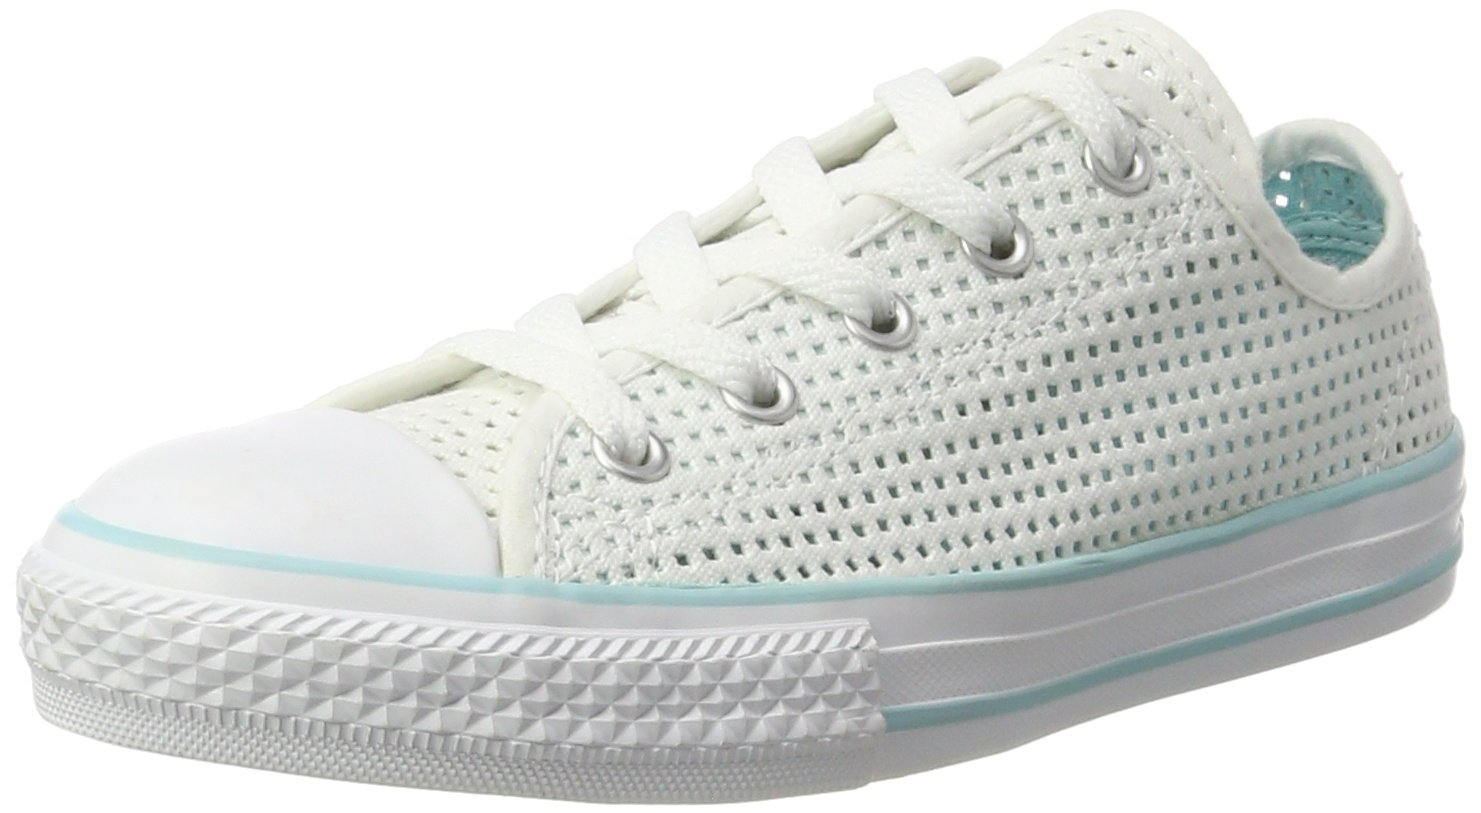 Converse Zapatillas Chuck Taylor All Star Double Tongue Ox Blanco/Turquesa EU 32 lpF0HG